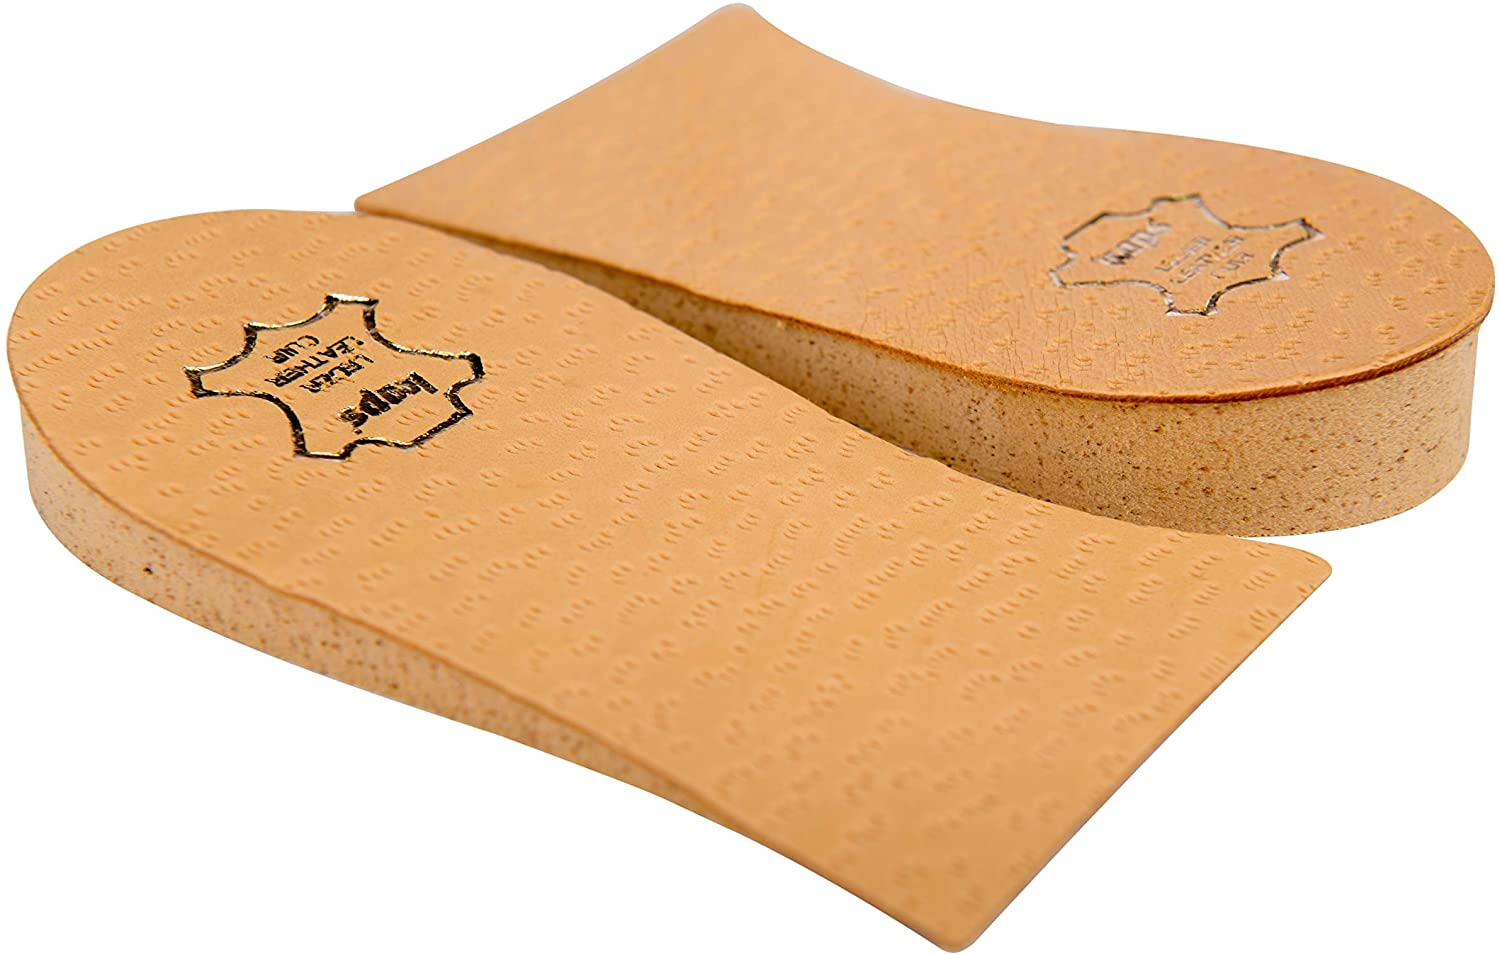 Heel Lift Elevator, Heel Raise, Heel Pad, Orthotic Wedge, Shoe Pad, Many Widths and Heights, Leather Cover, Kaps Topmed, 2 Pieces Left and Right (Height 10 mm / 0.4 inch - Size S)